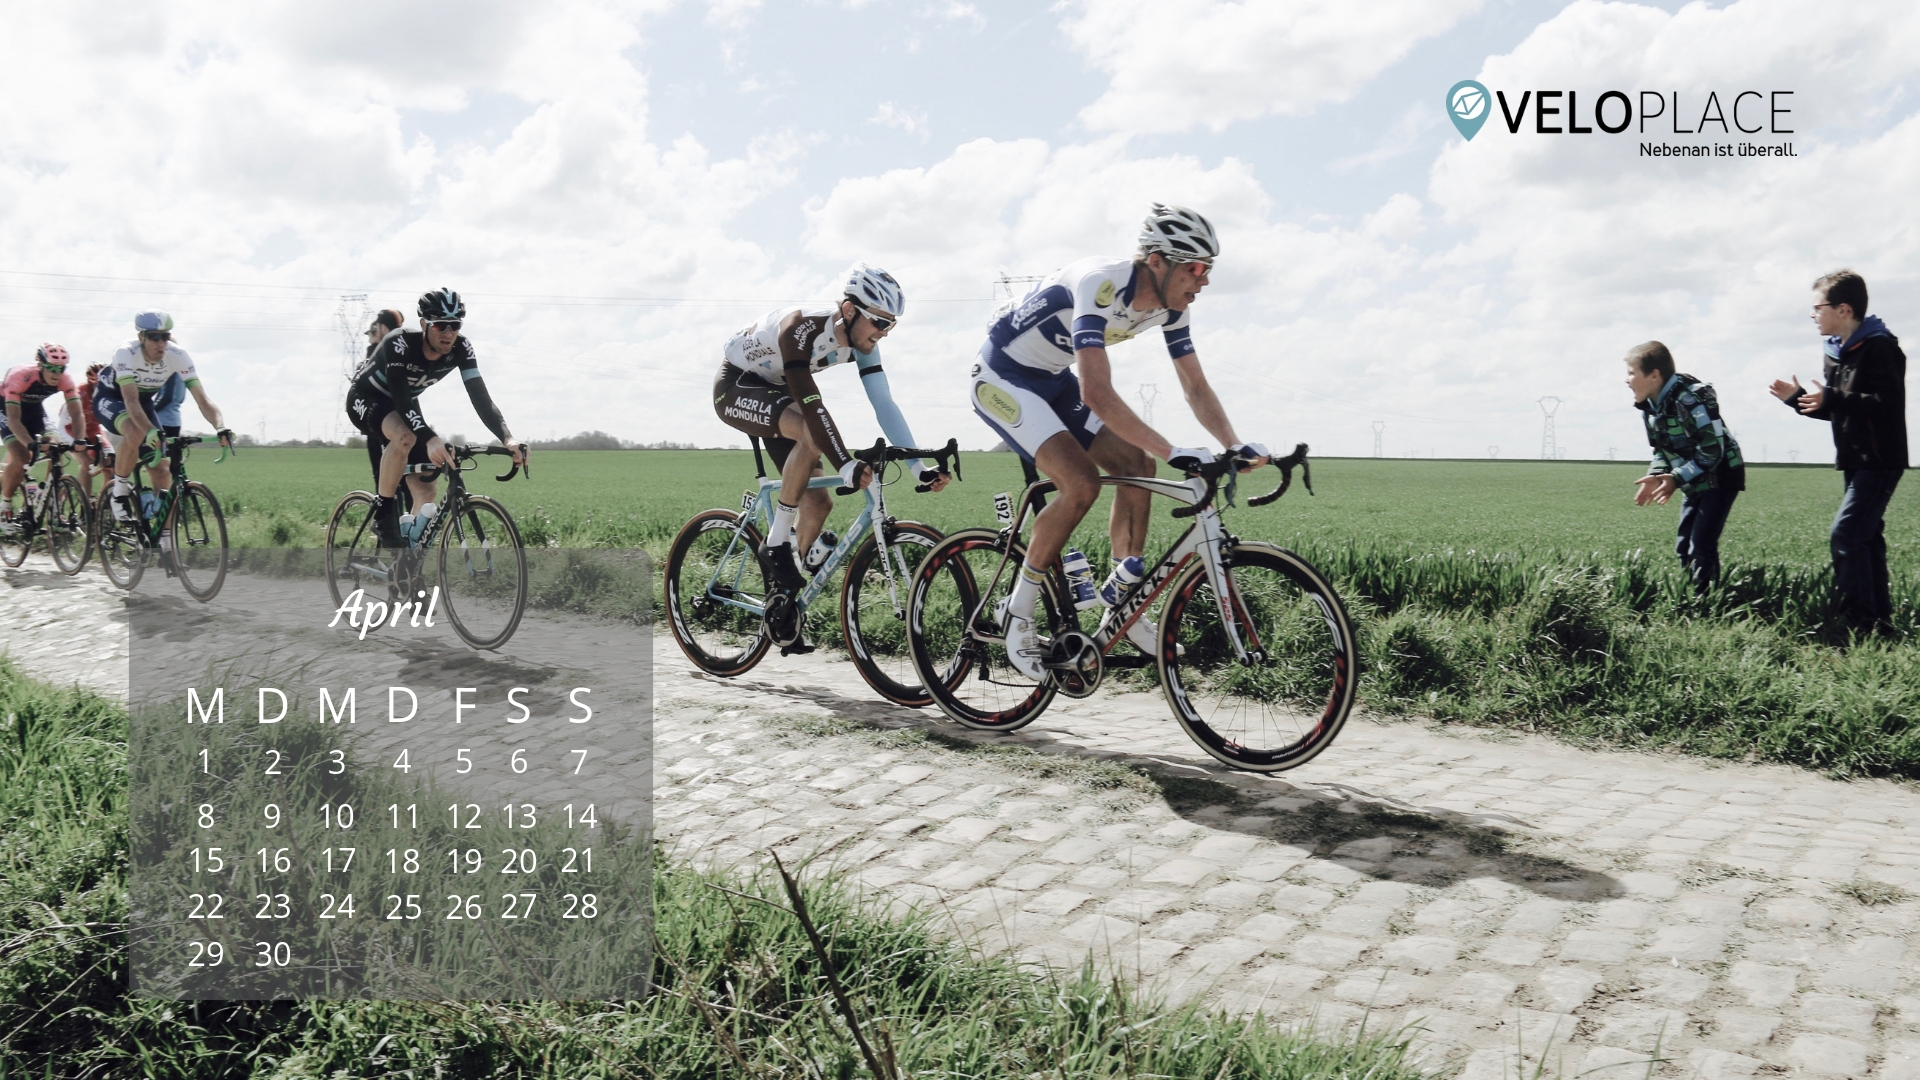 Veloplace Wallpaper April 2019